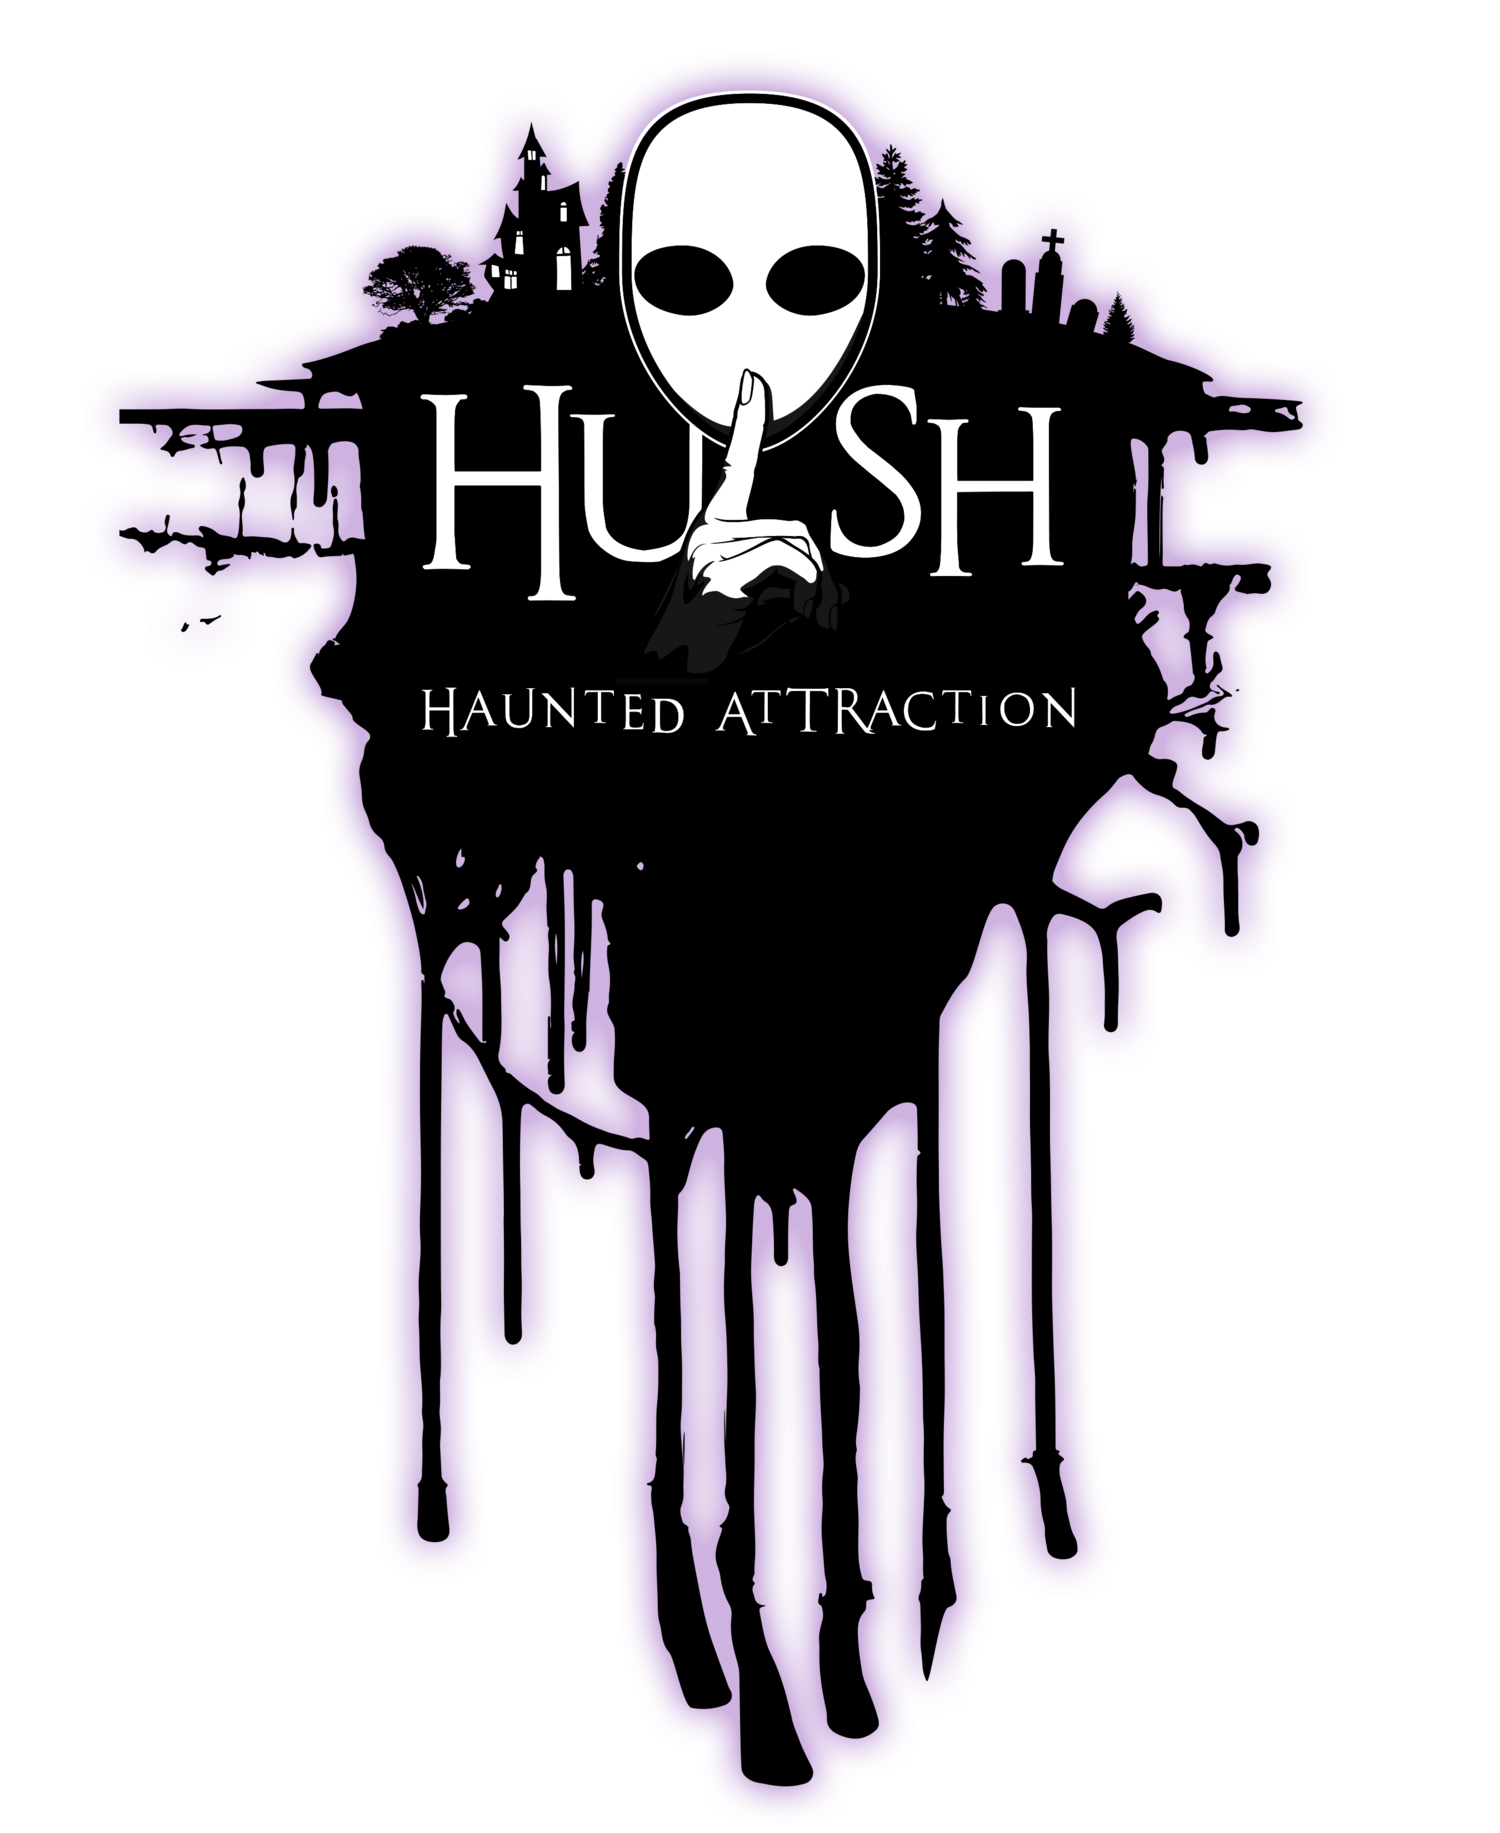 HUSH Haunted Attraction